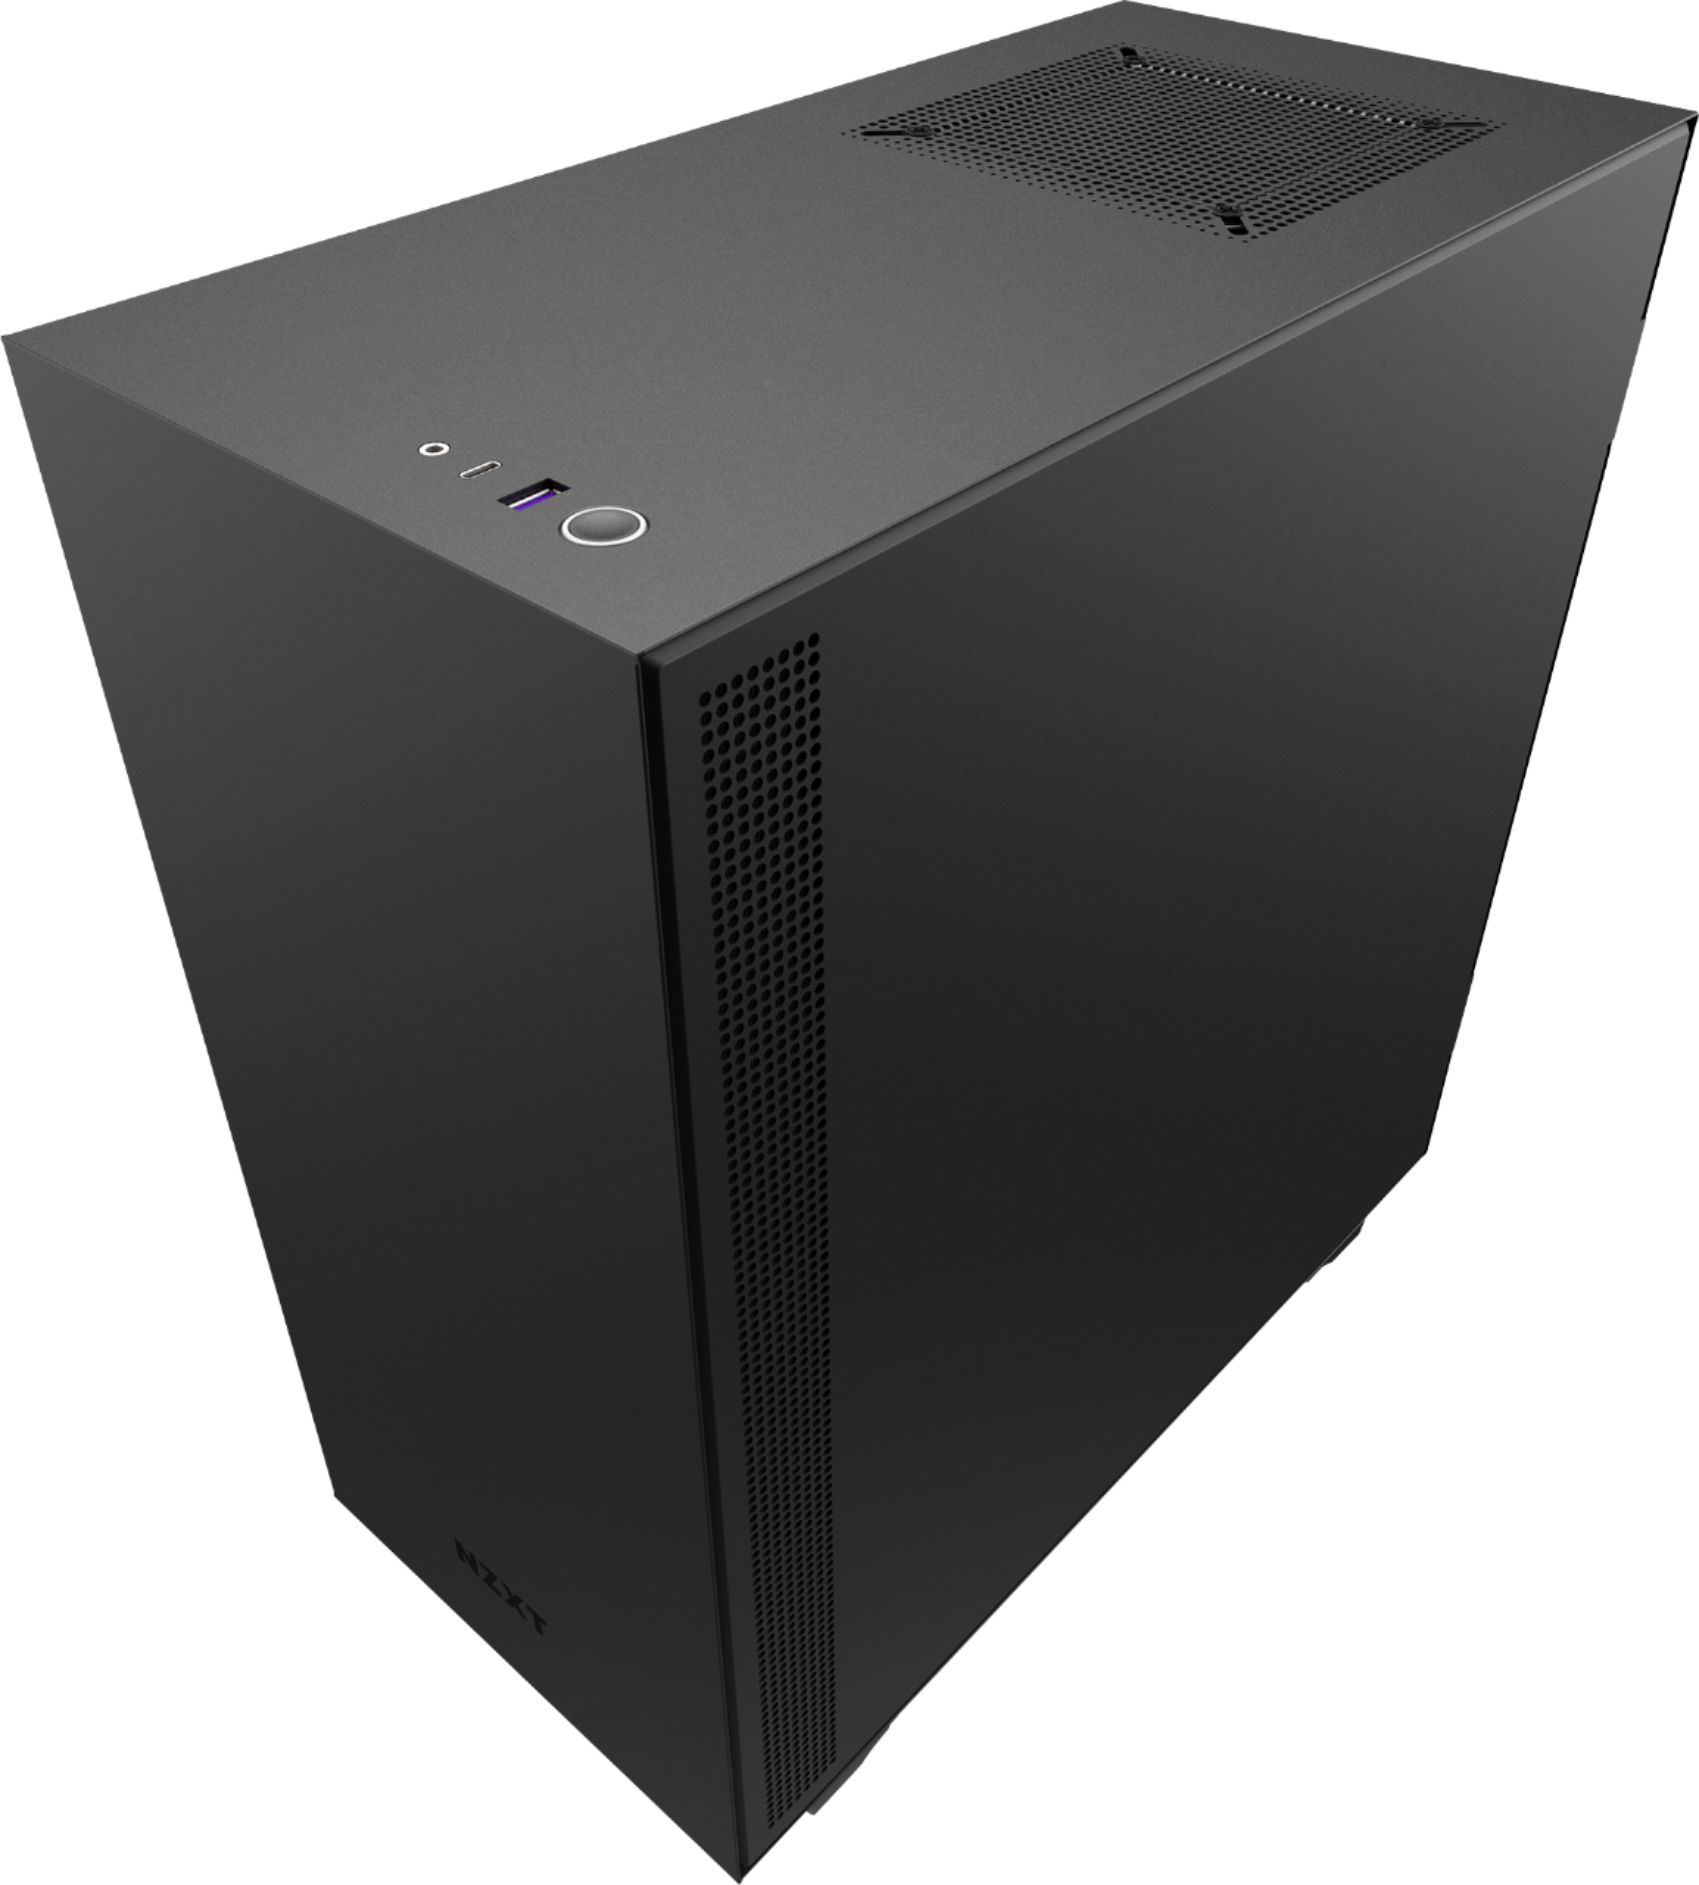 NZXT H510 Tempered Glass ATX Mid-Tower Computer Case - Black: $71.99